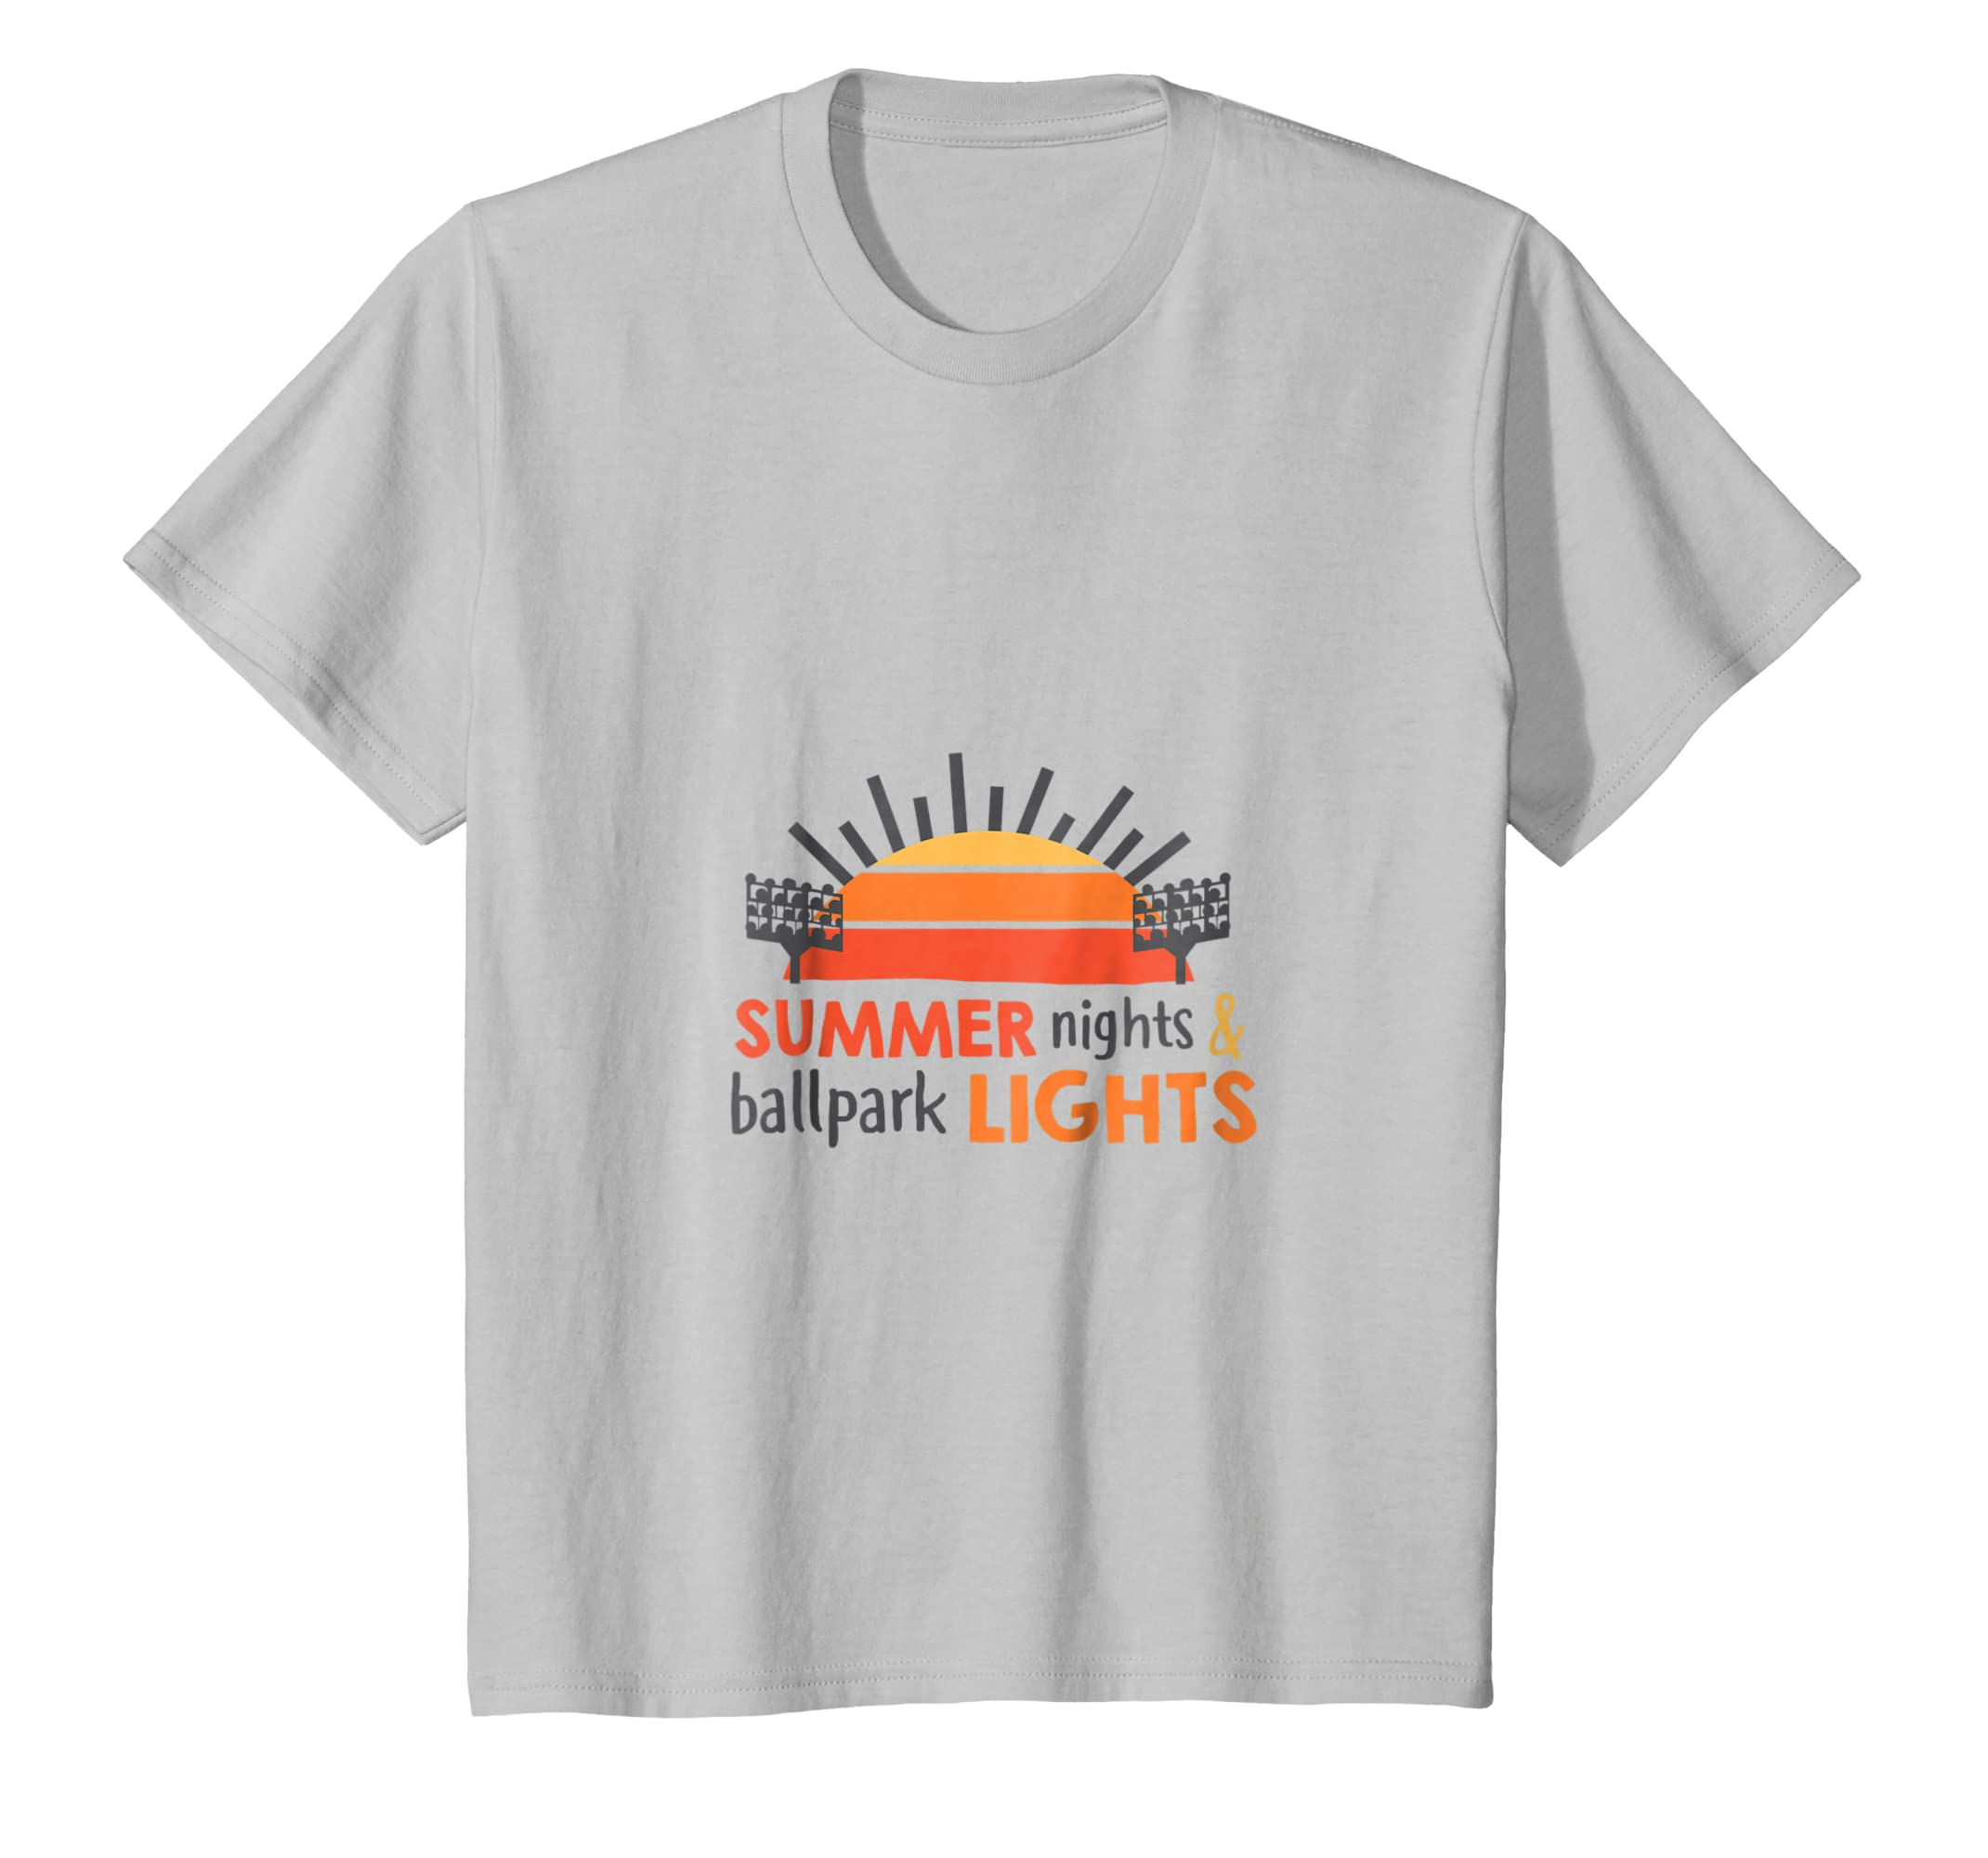 b956c61bb444 Amazon.com  Summer sights   ballpark Lights Baseball Shirt for Men Women   Clothing